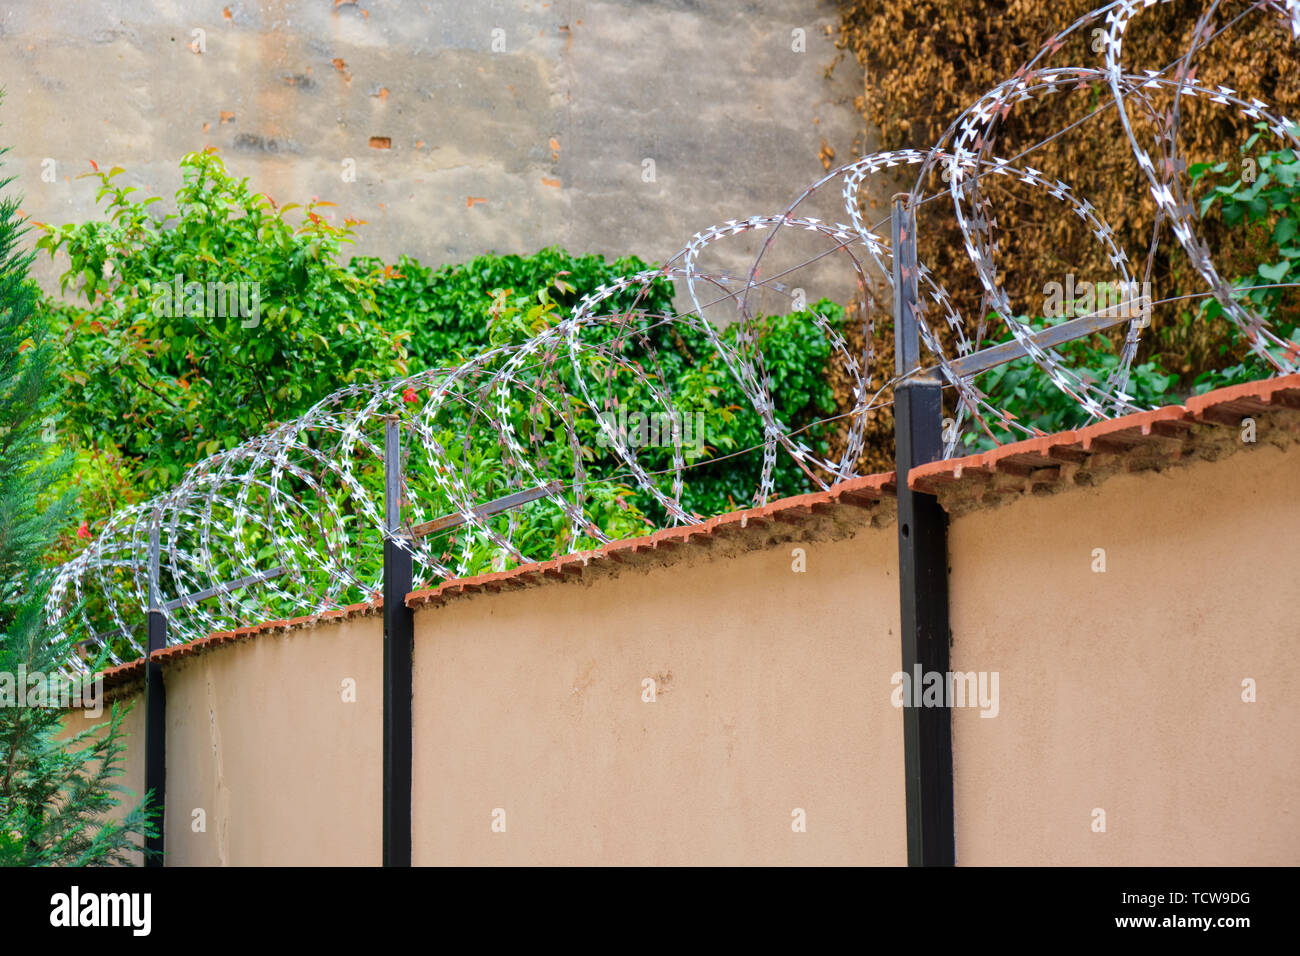 Barbed wire on a wall, security measure against thieves / intruders. - Stock Image